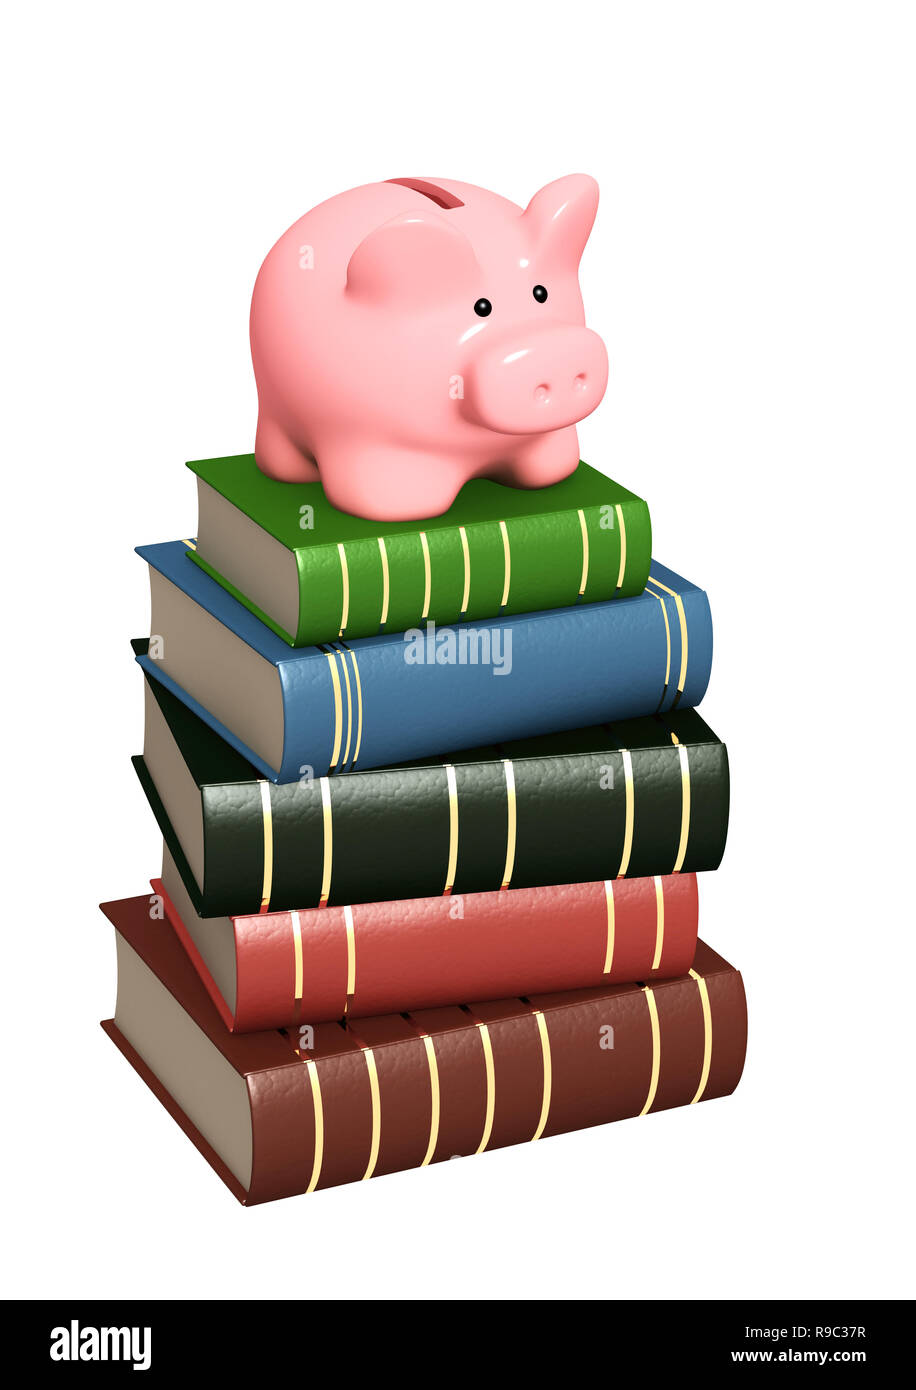 Piggy bank and books. Objects isolated over white - Stock Image